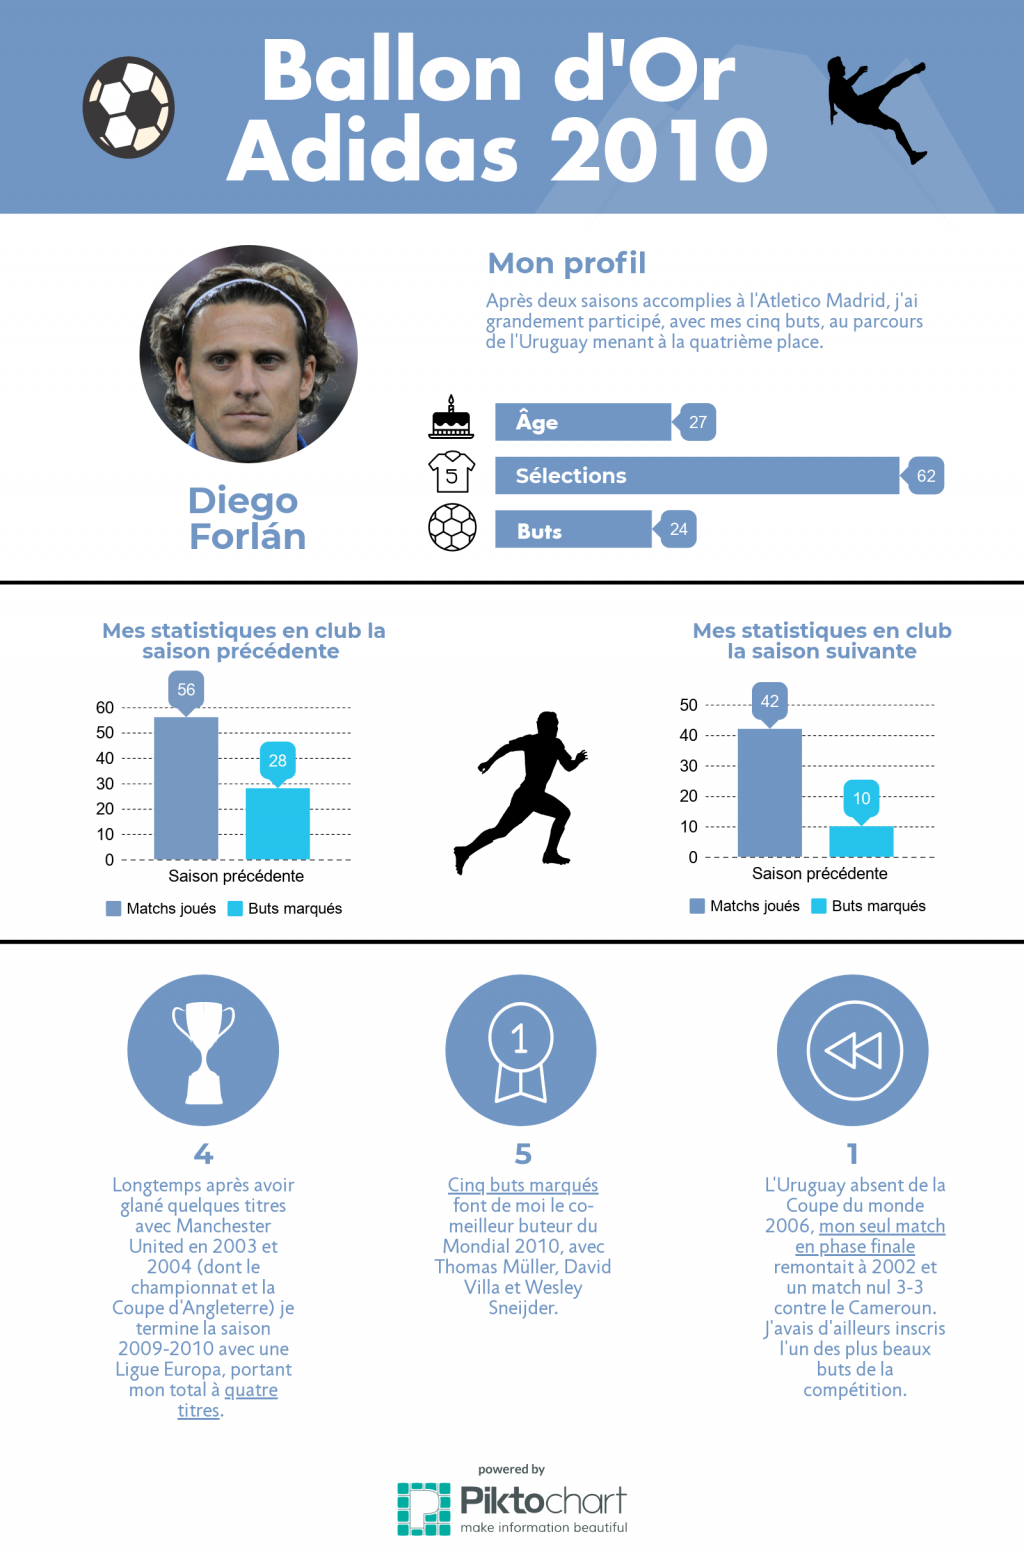 diego-forlan-2010-ballon-dor-adidas-foot-dinfographies